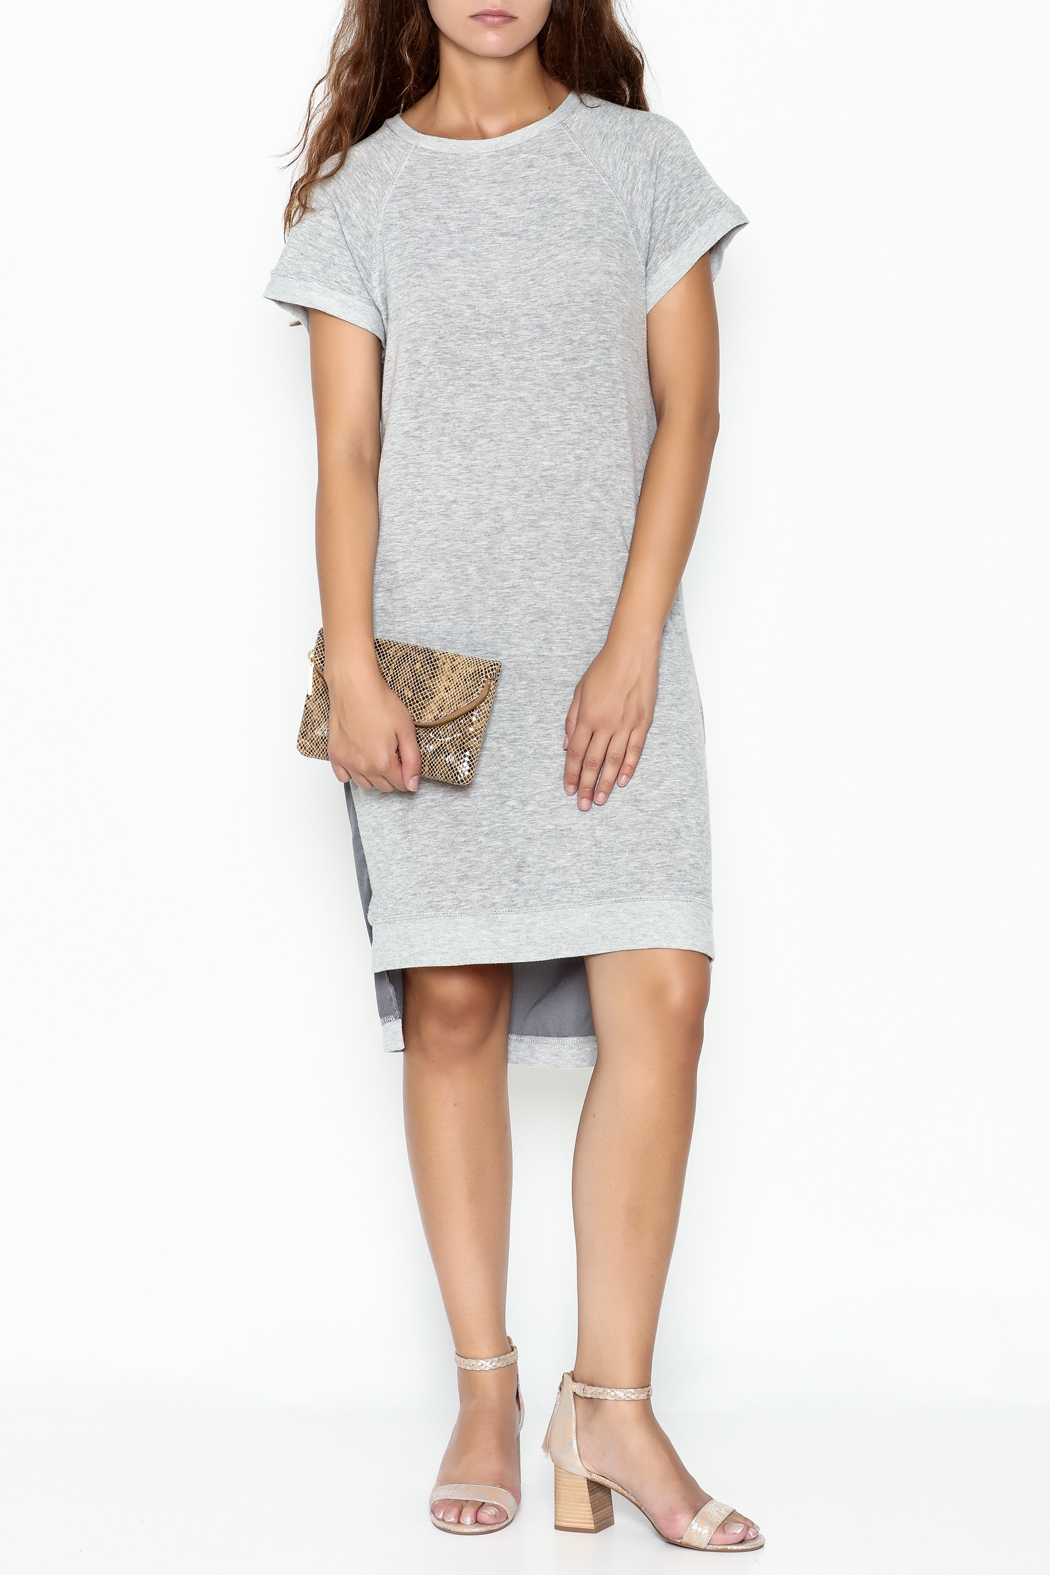 Coin 1804 T Shirt Dress - Side Cropped Image